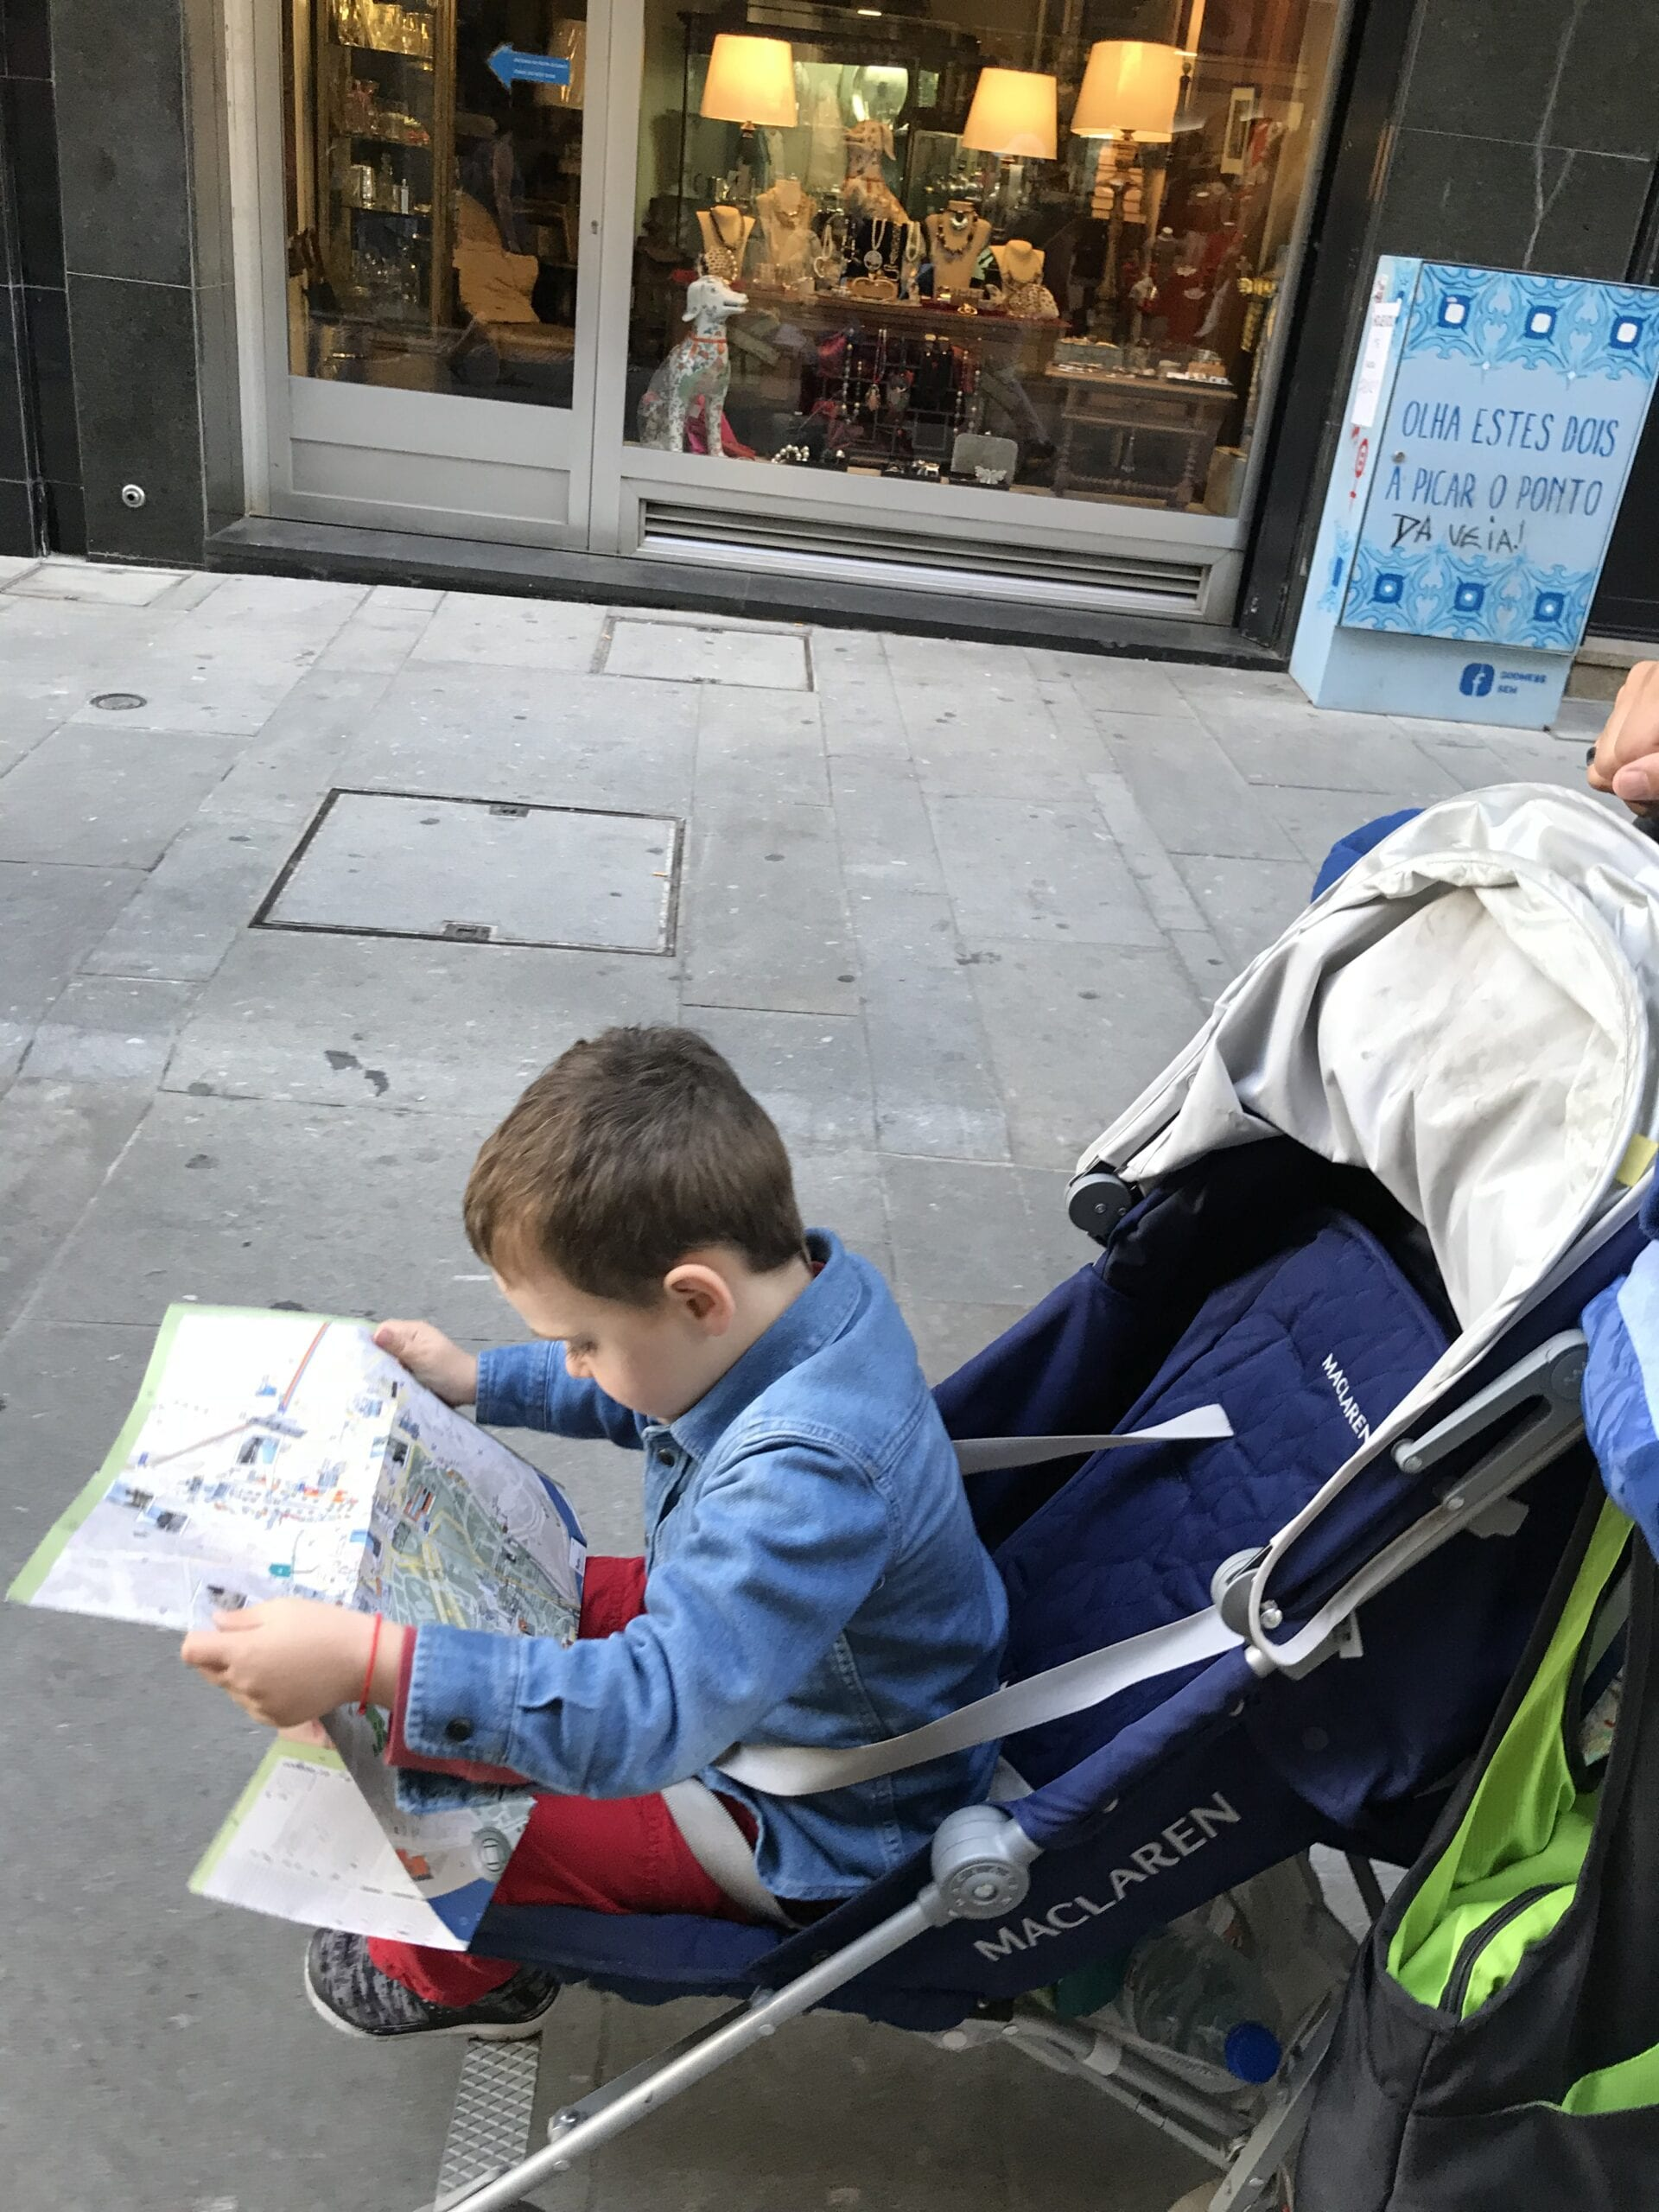 Child in a stroller reading a map